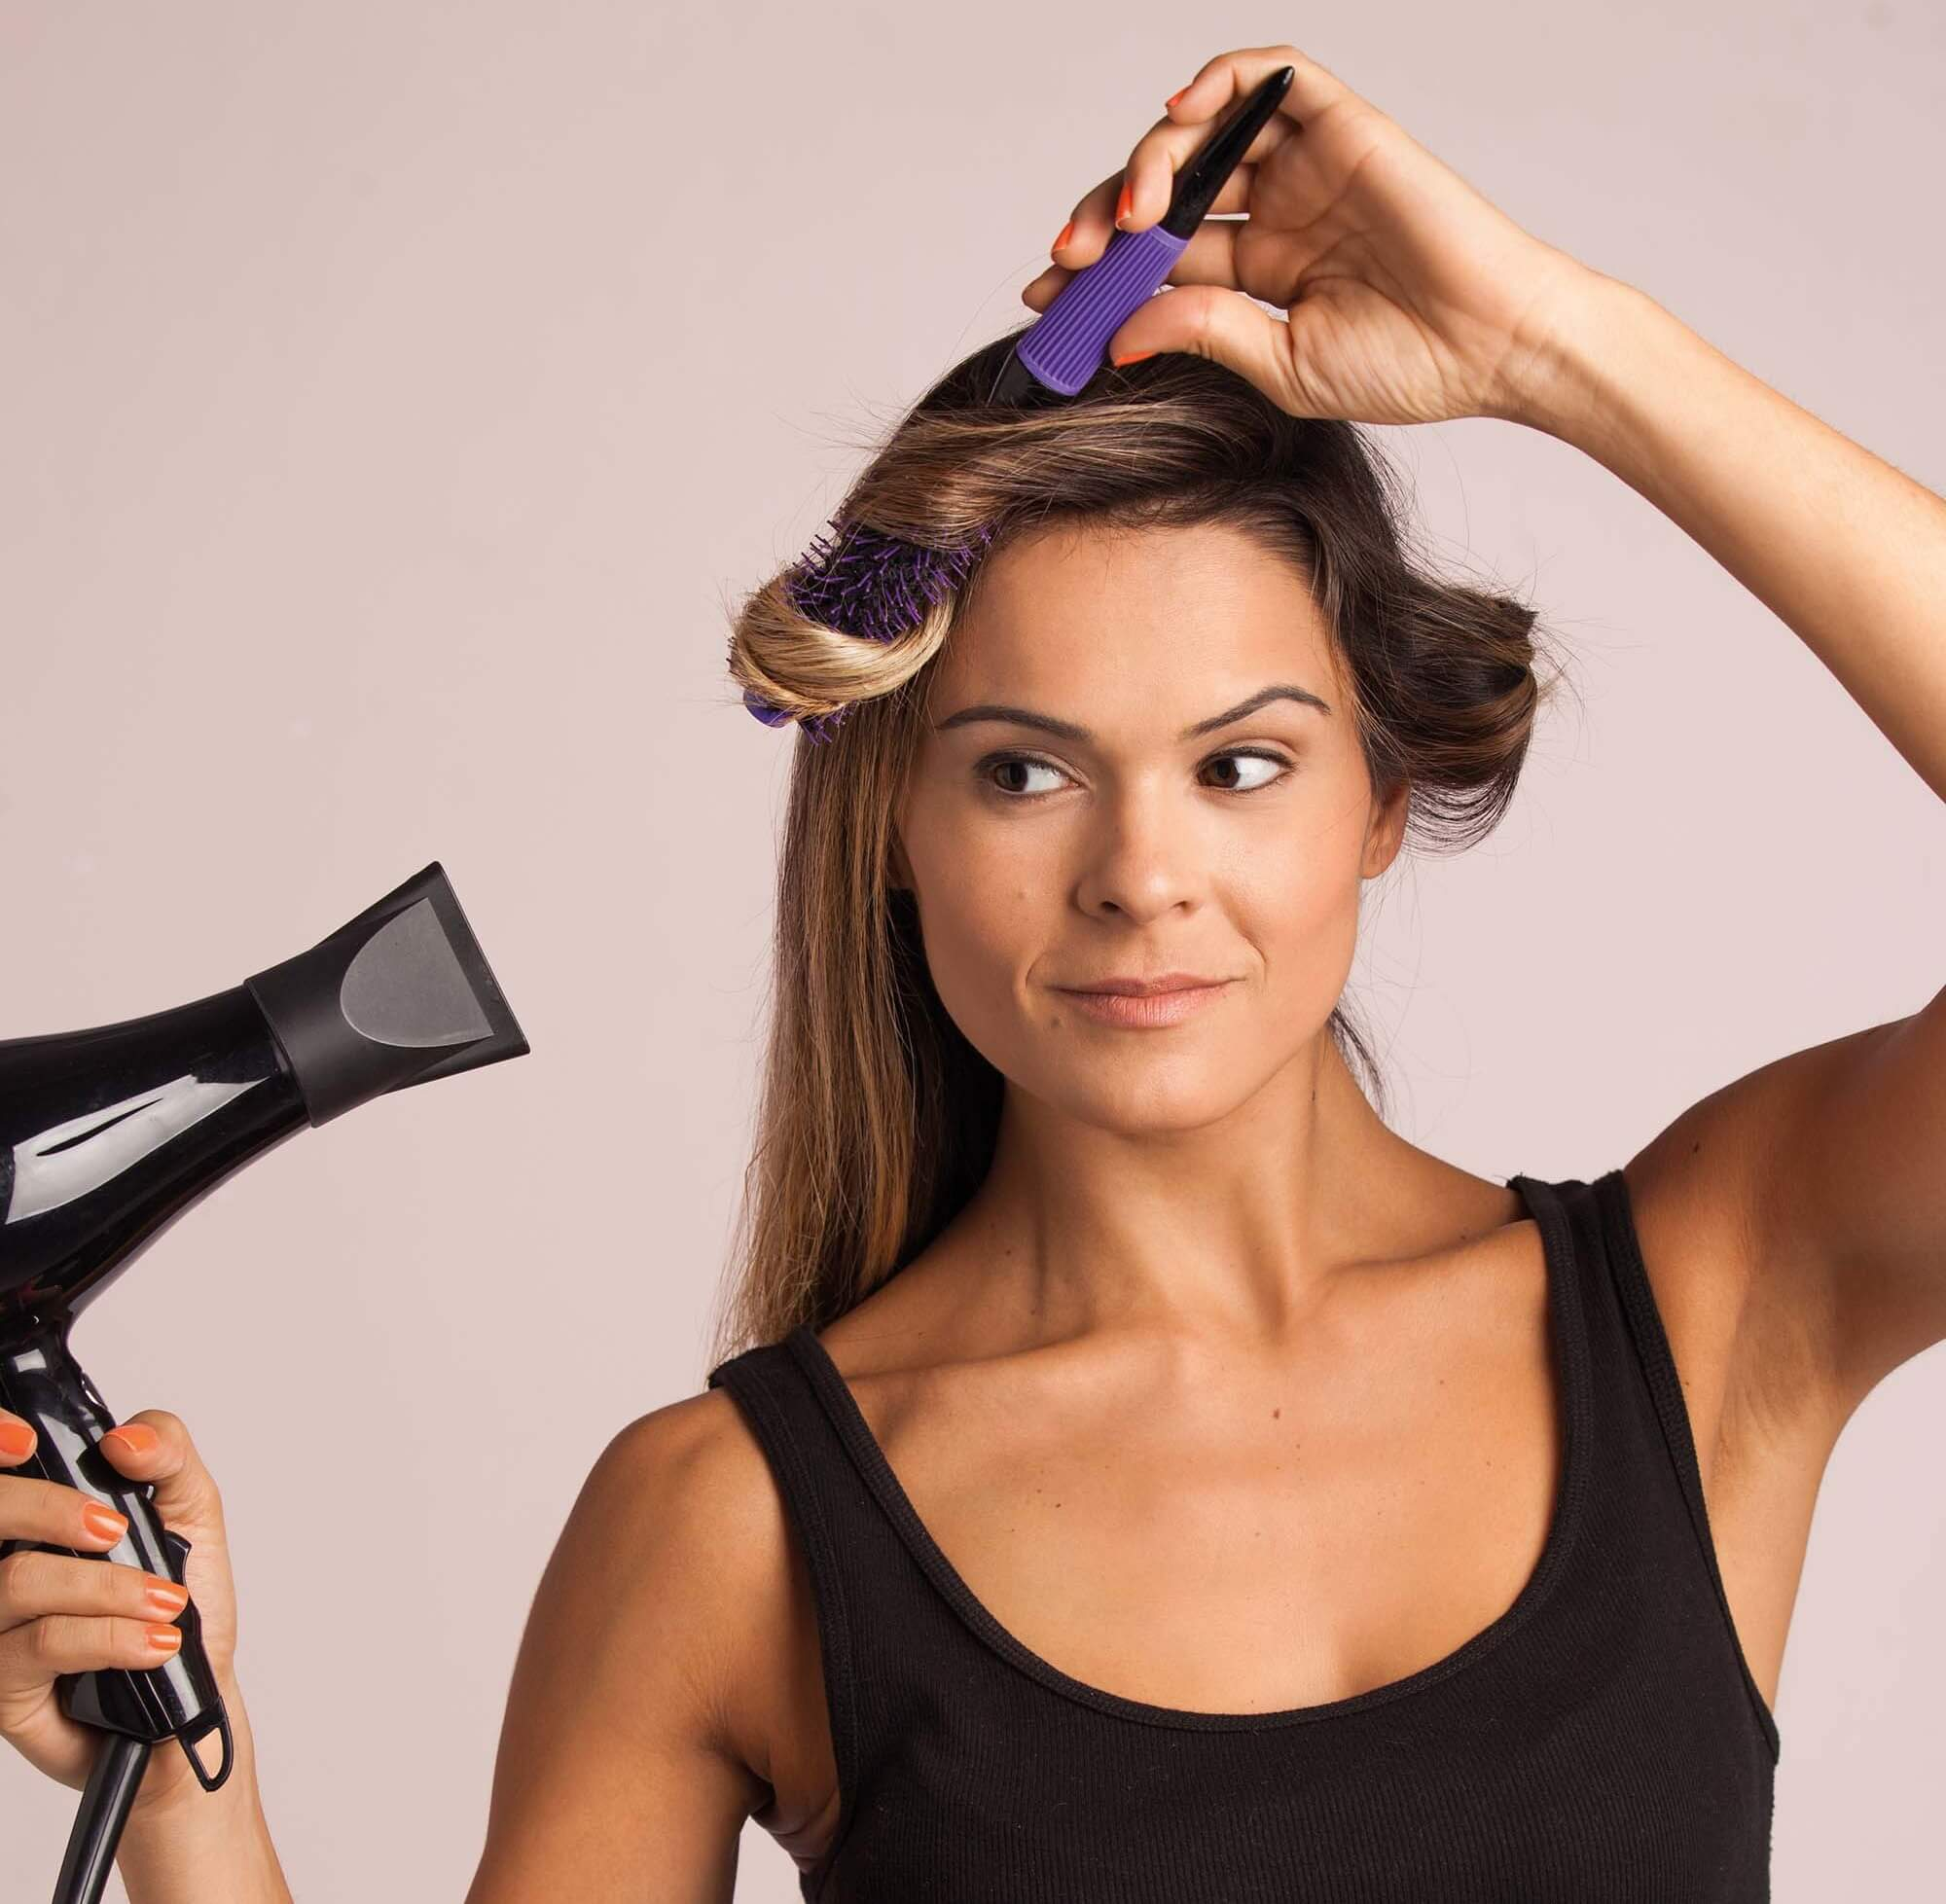 how to get great blow dried hair at home woman using hair dryer and brush